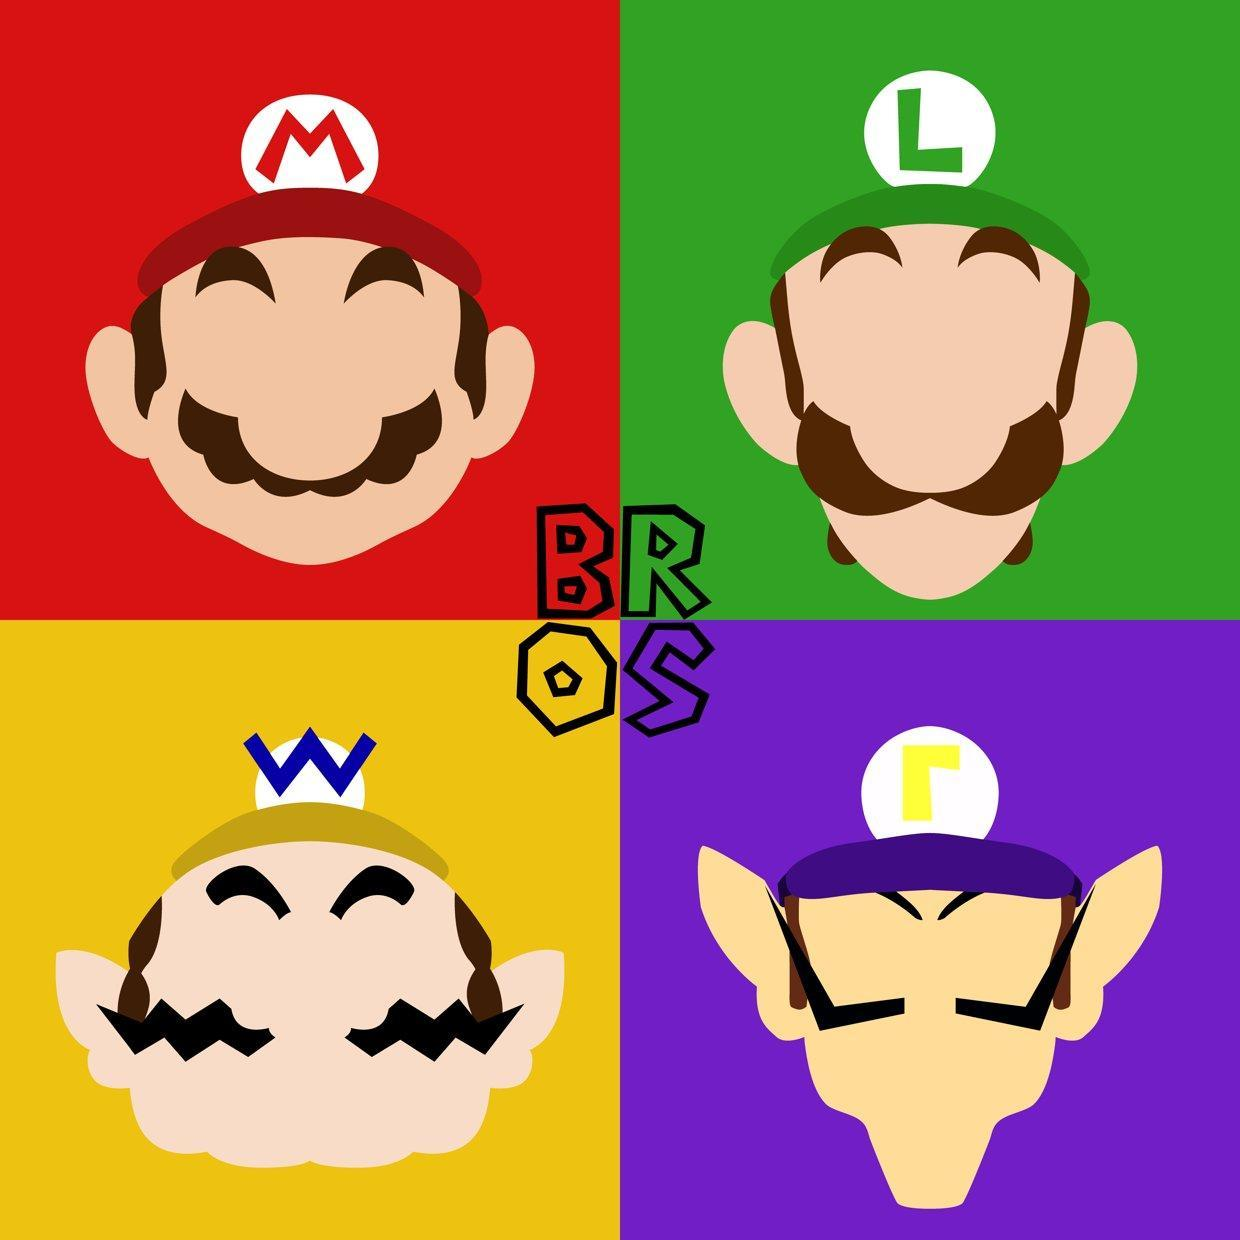 Which Super Mario Brother are you most like?